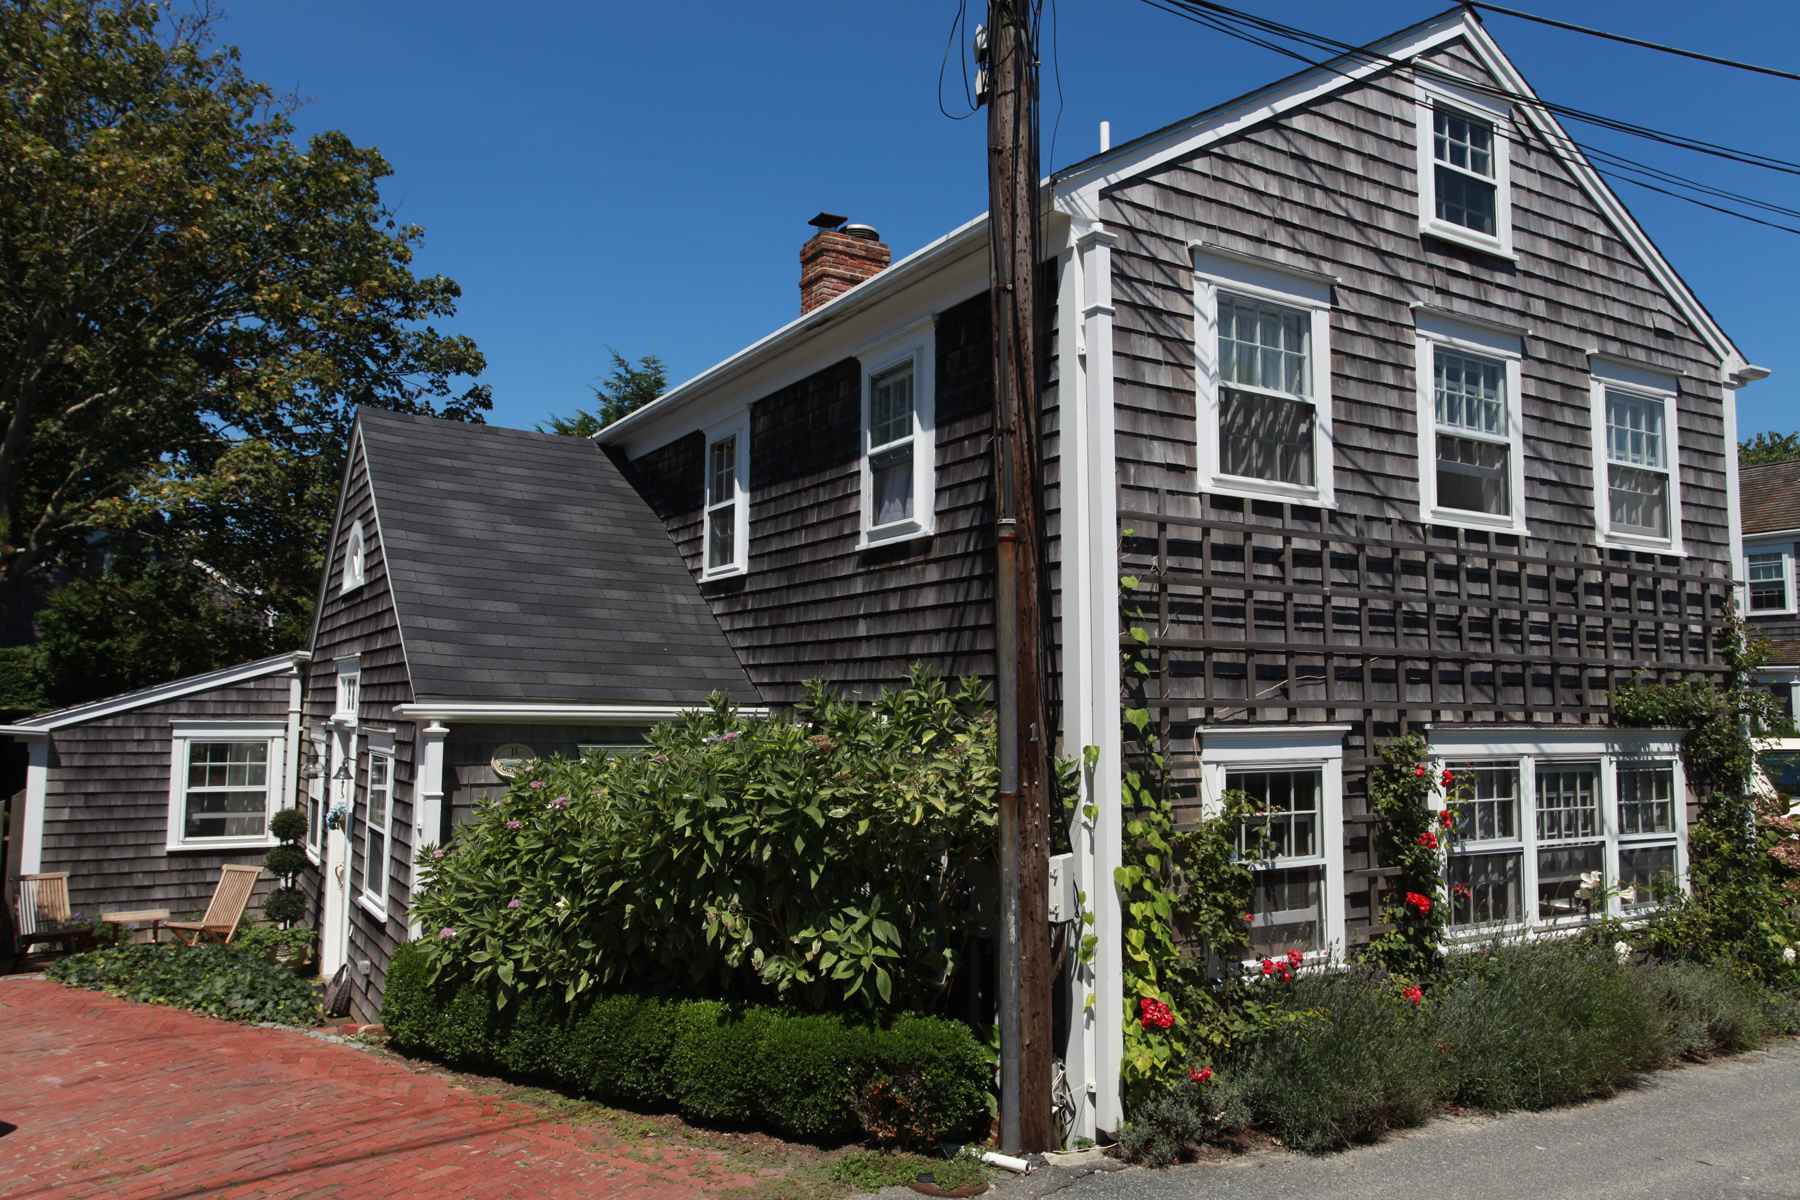 Casa Unifamiliar por un Venta en Charming 1930's Carriage House 11 Weymouth Street Nantucket, Massachusetts 02554 Estados Unidos